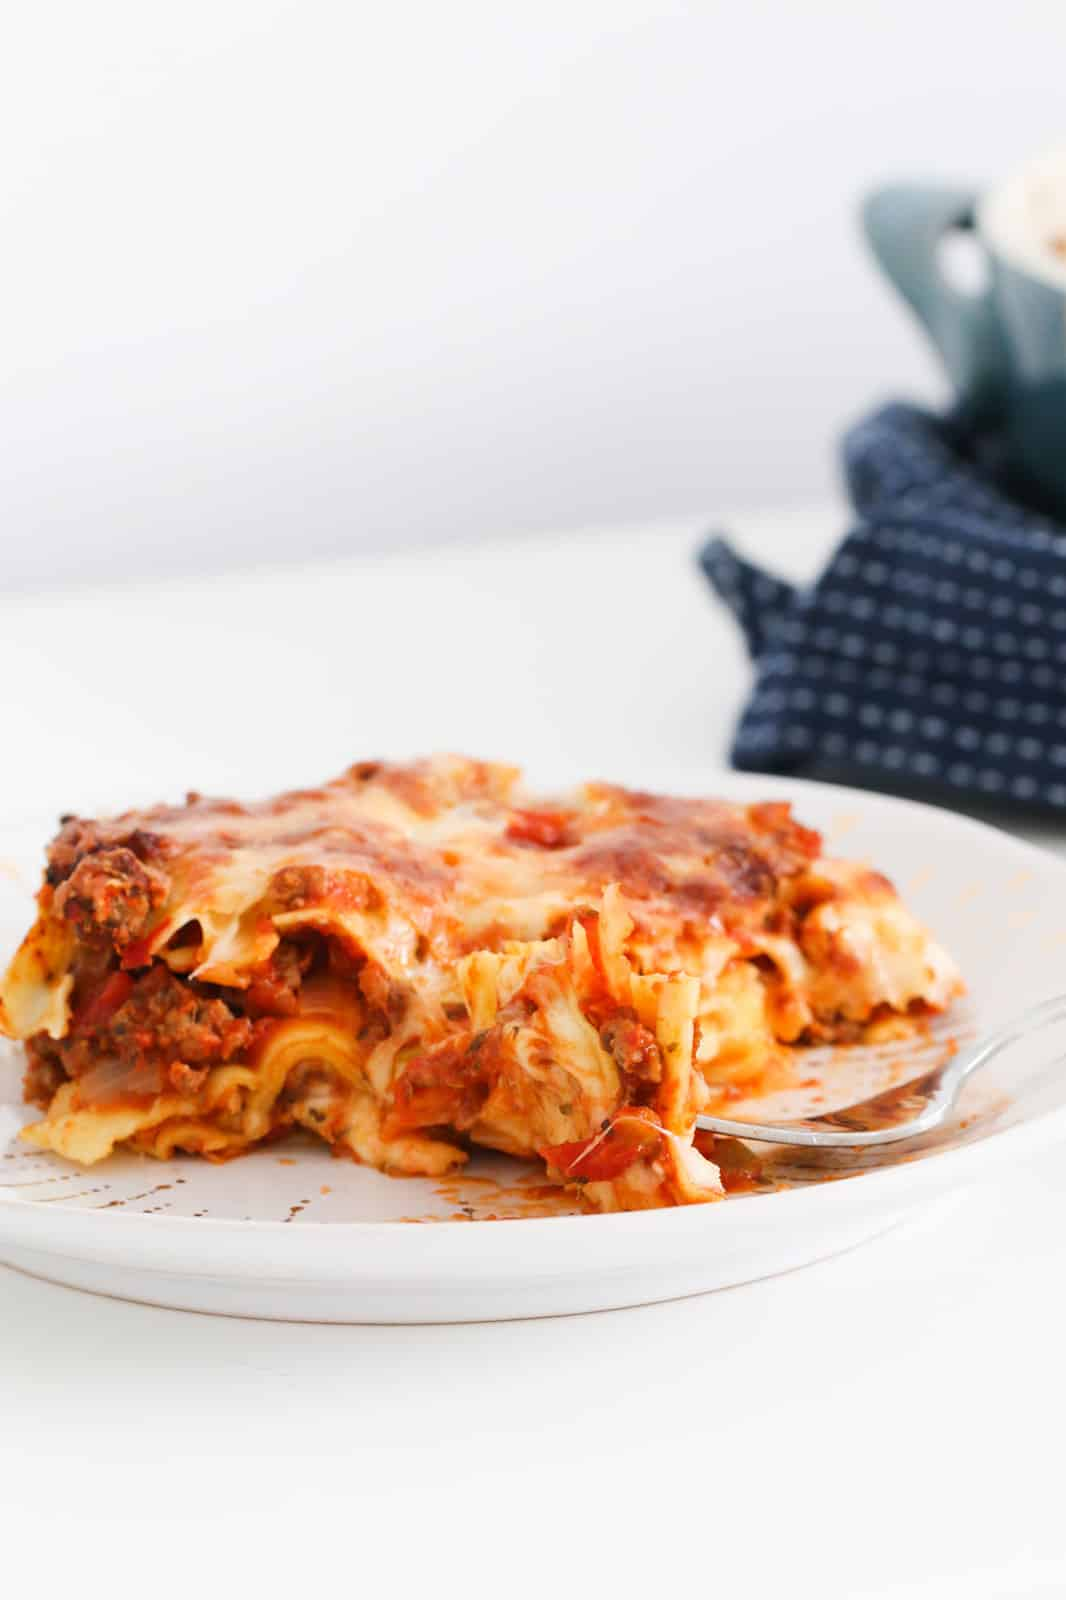 a serving of lasagne on a plate with a fork